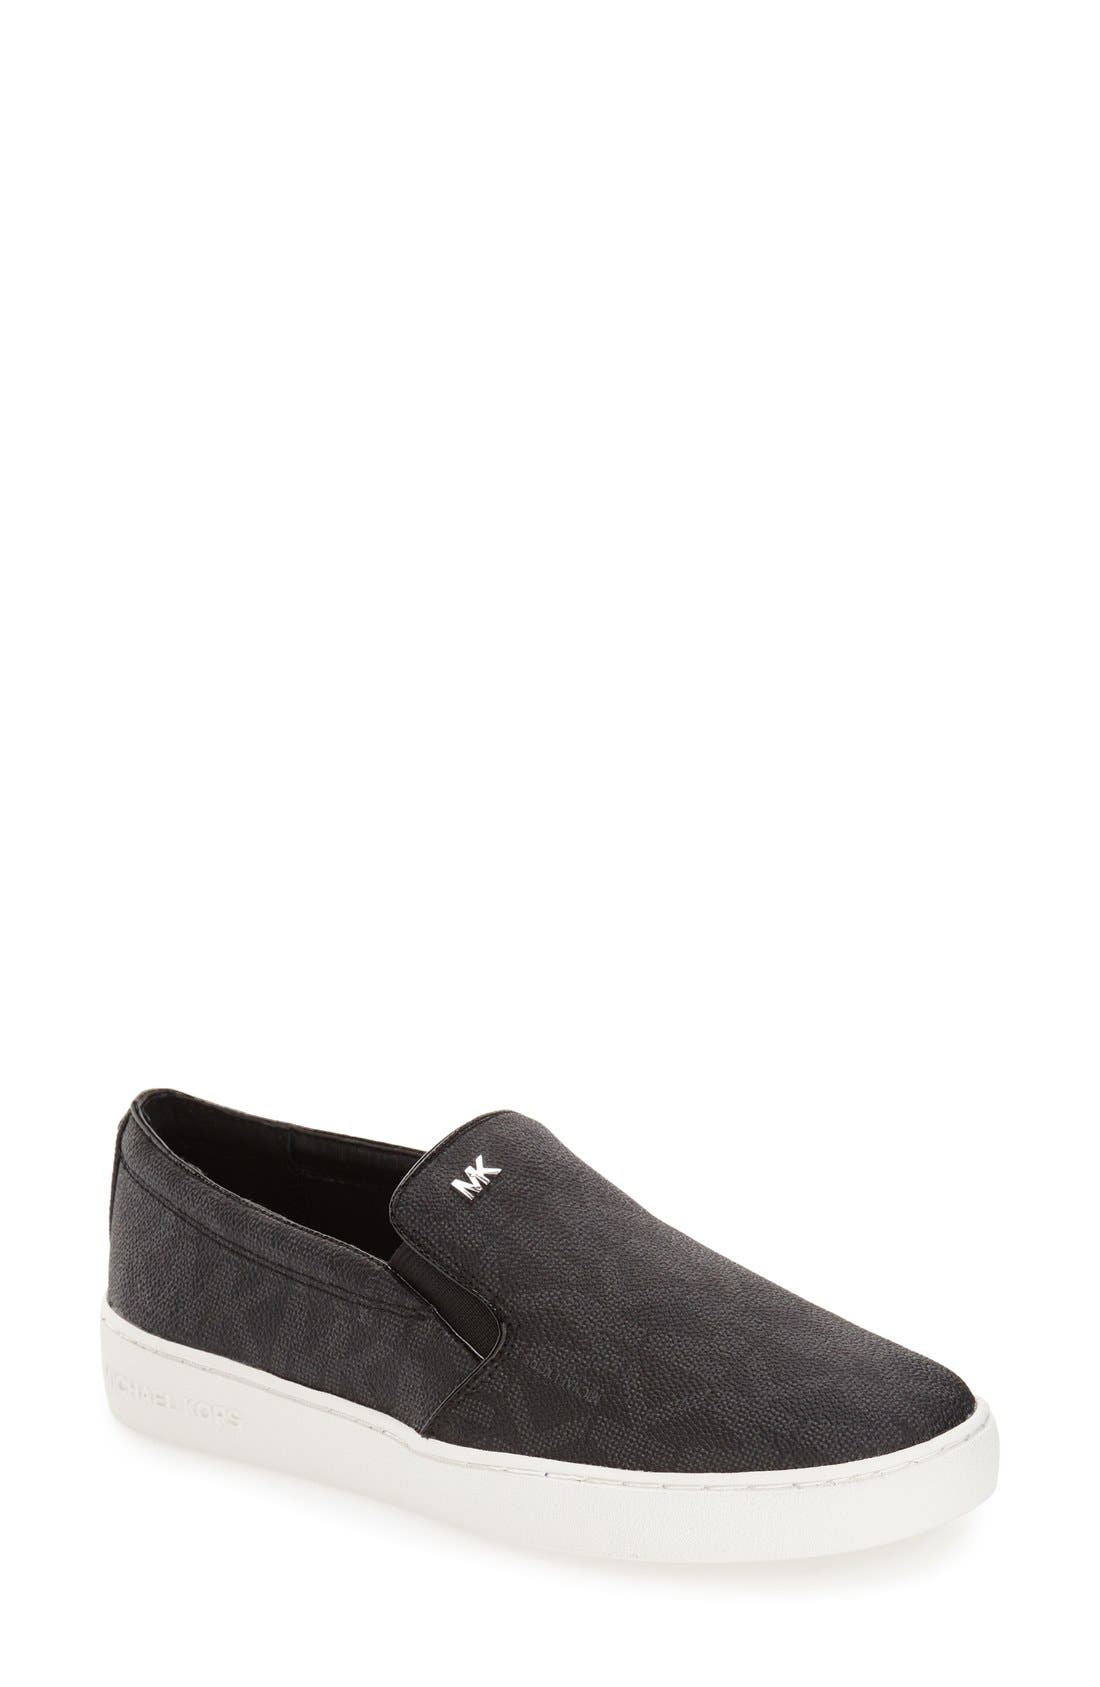 Keaton Slip-On Sneaker,                             Main thumbnail 20, color,